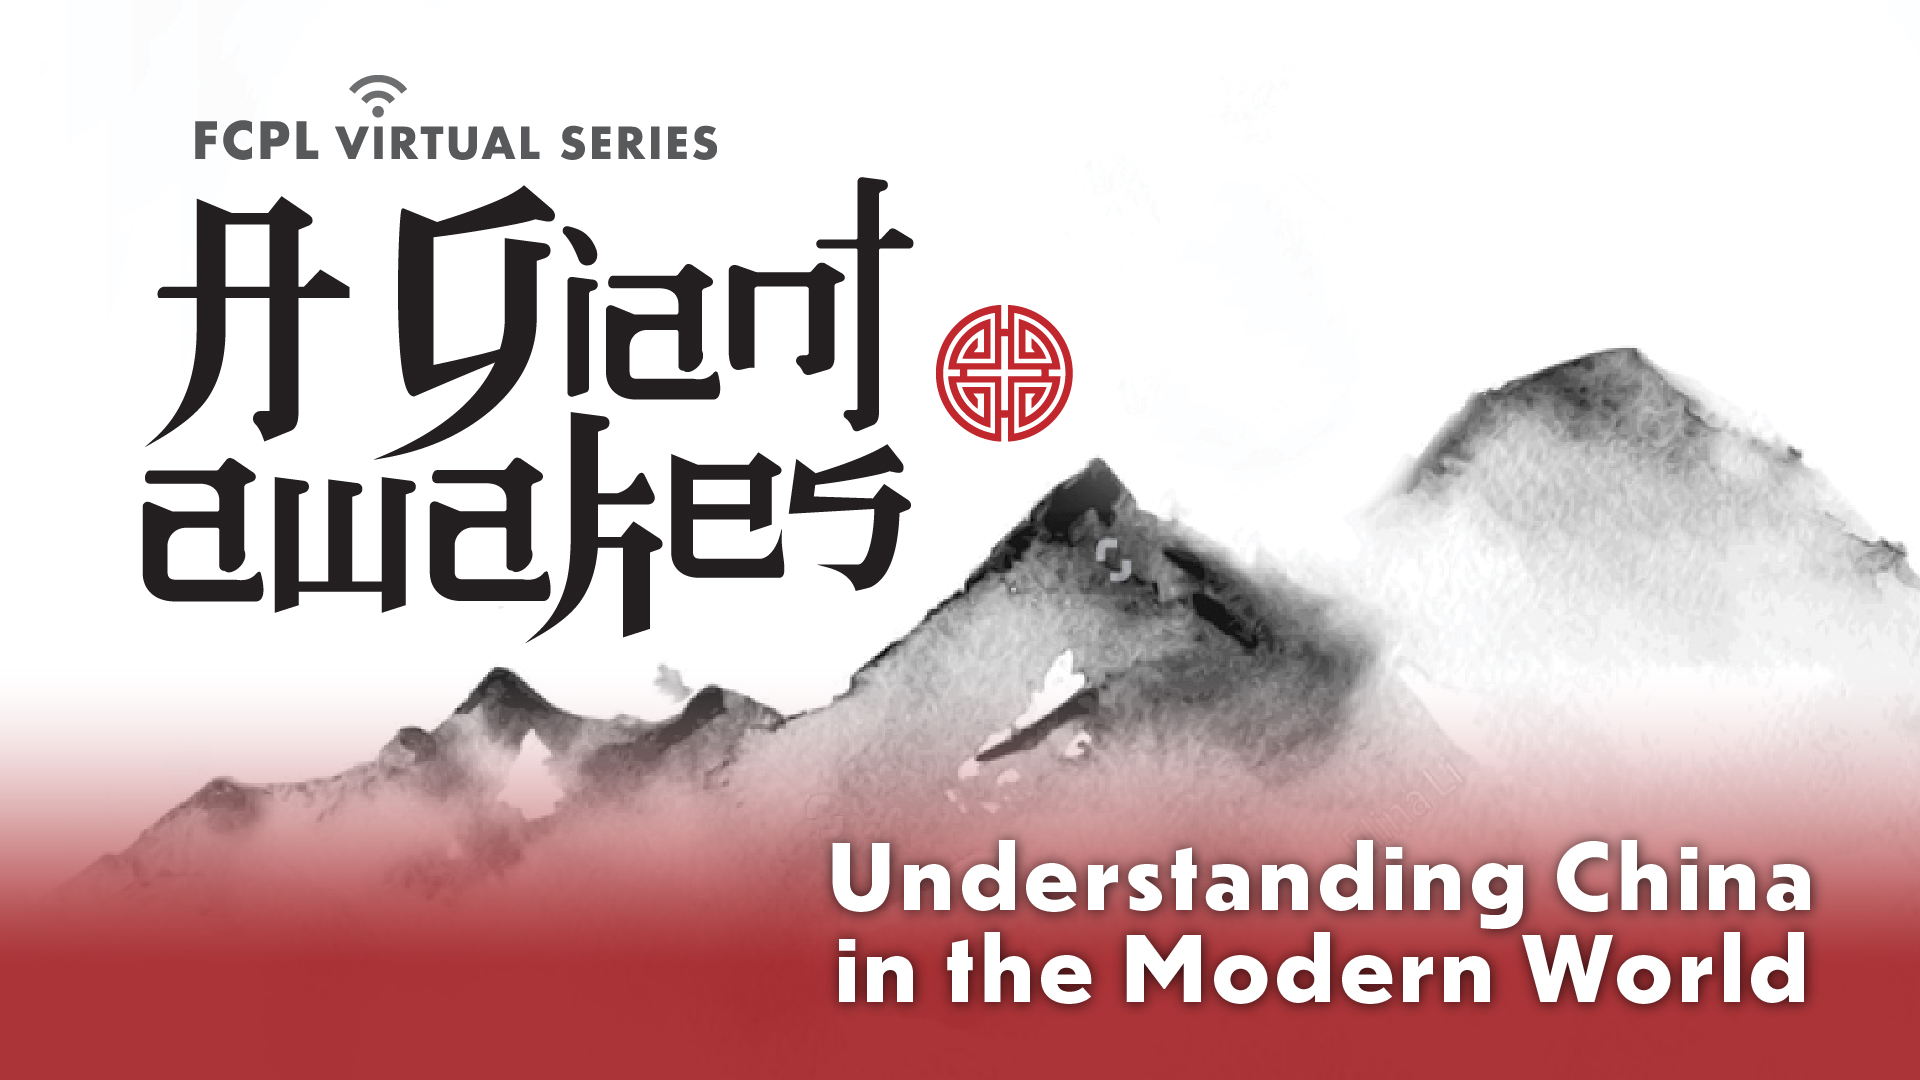 A Giant Awakes™ – Understanding China in the Modern World: China's Quest for Hegemony in the 21st Century